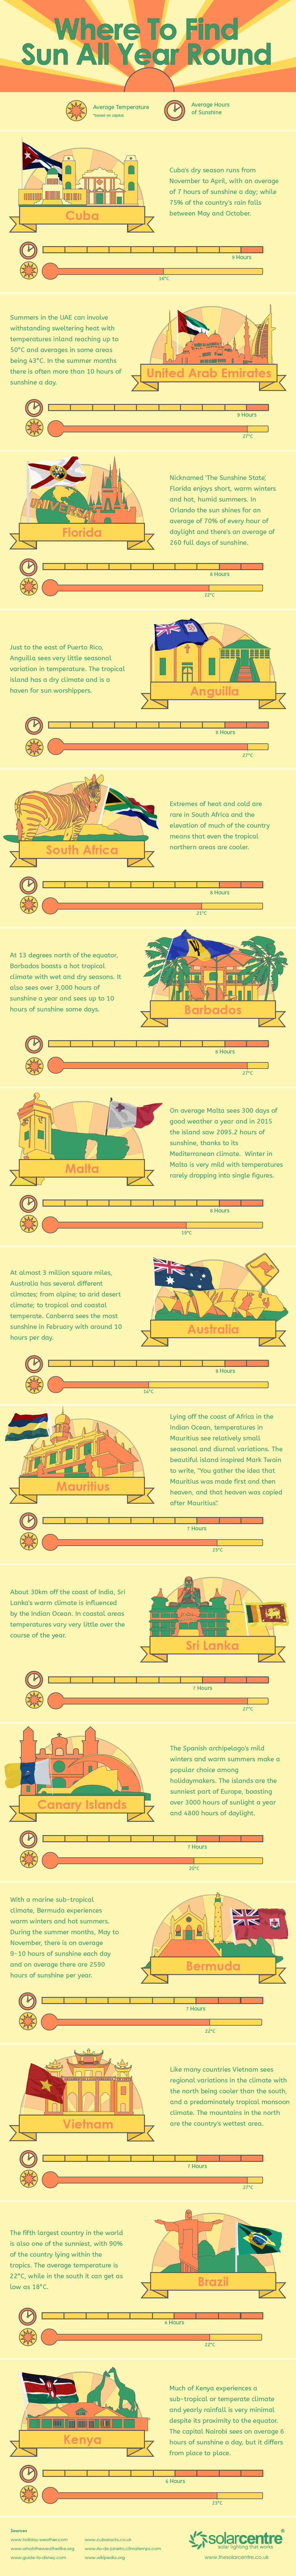 Follow The Sun All Year Long - Infographic